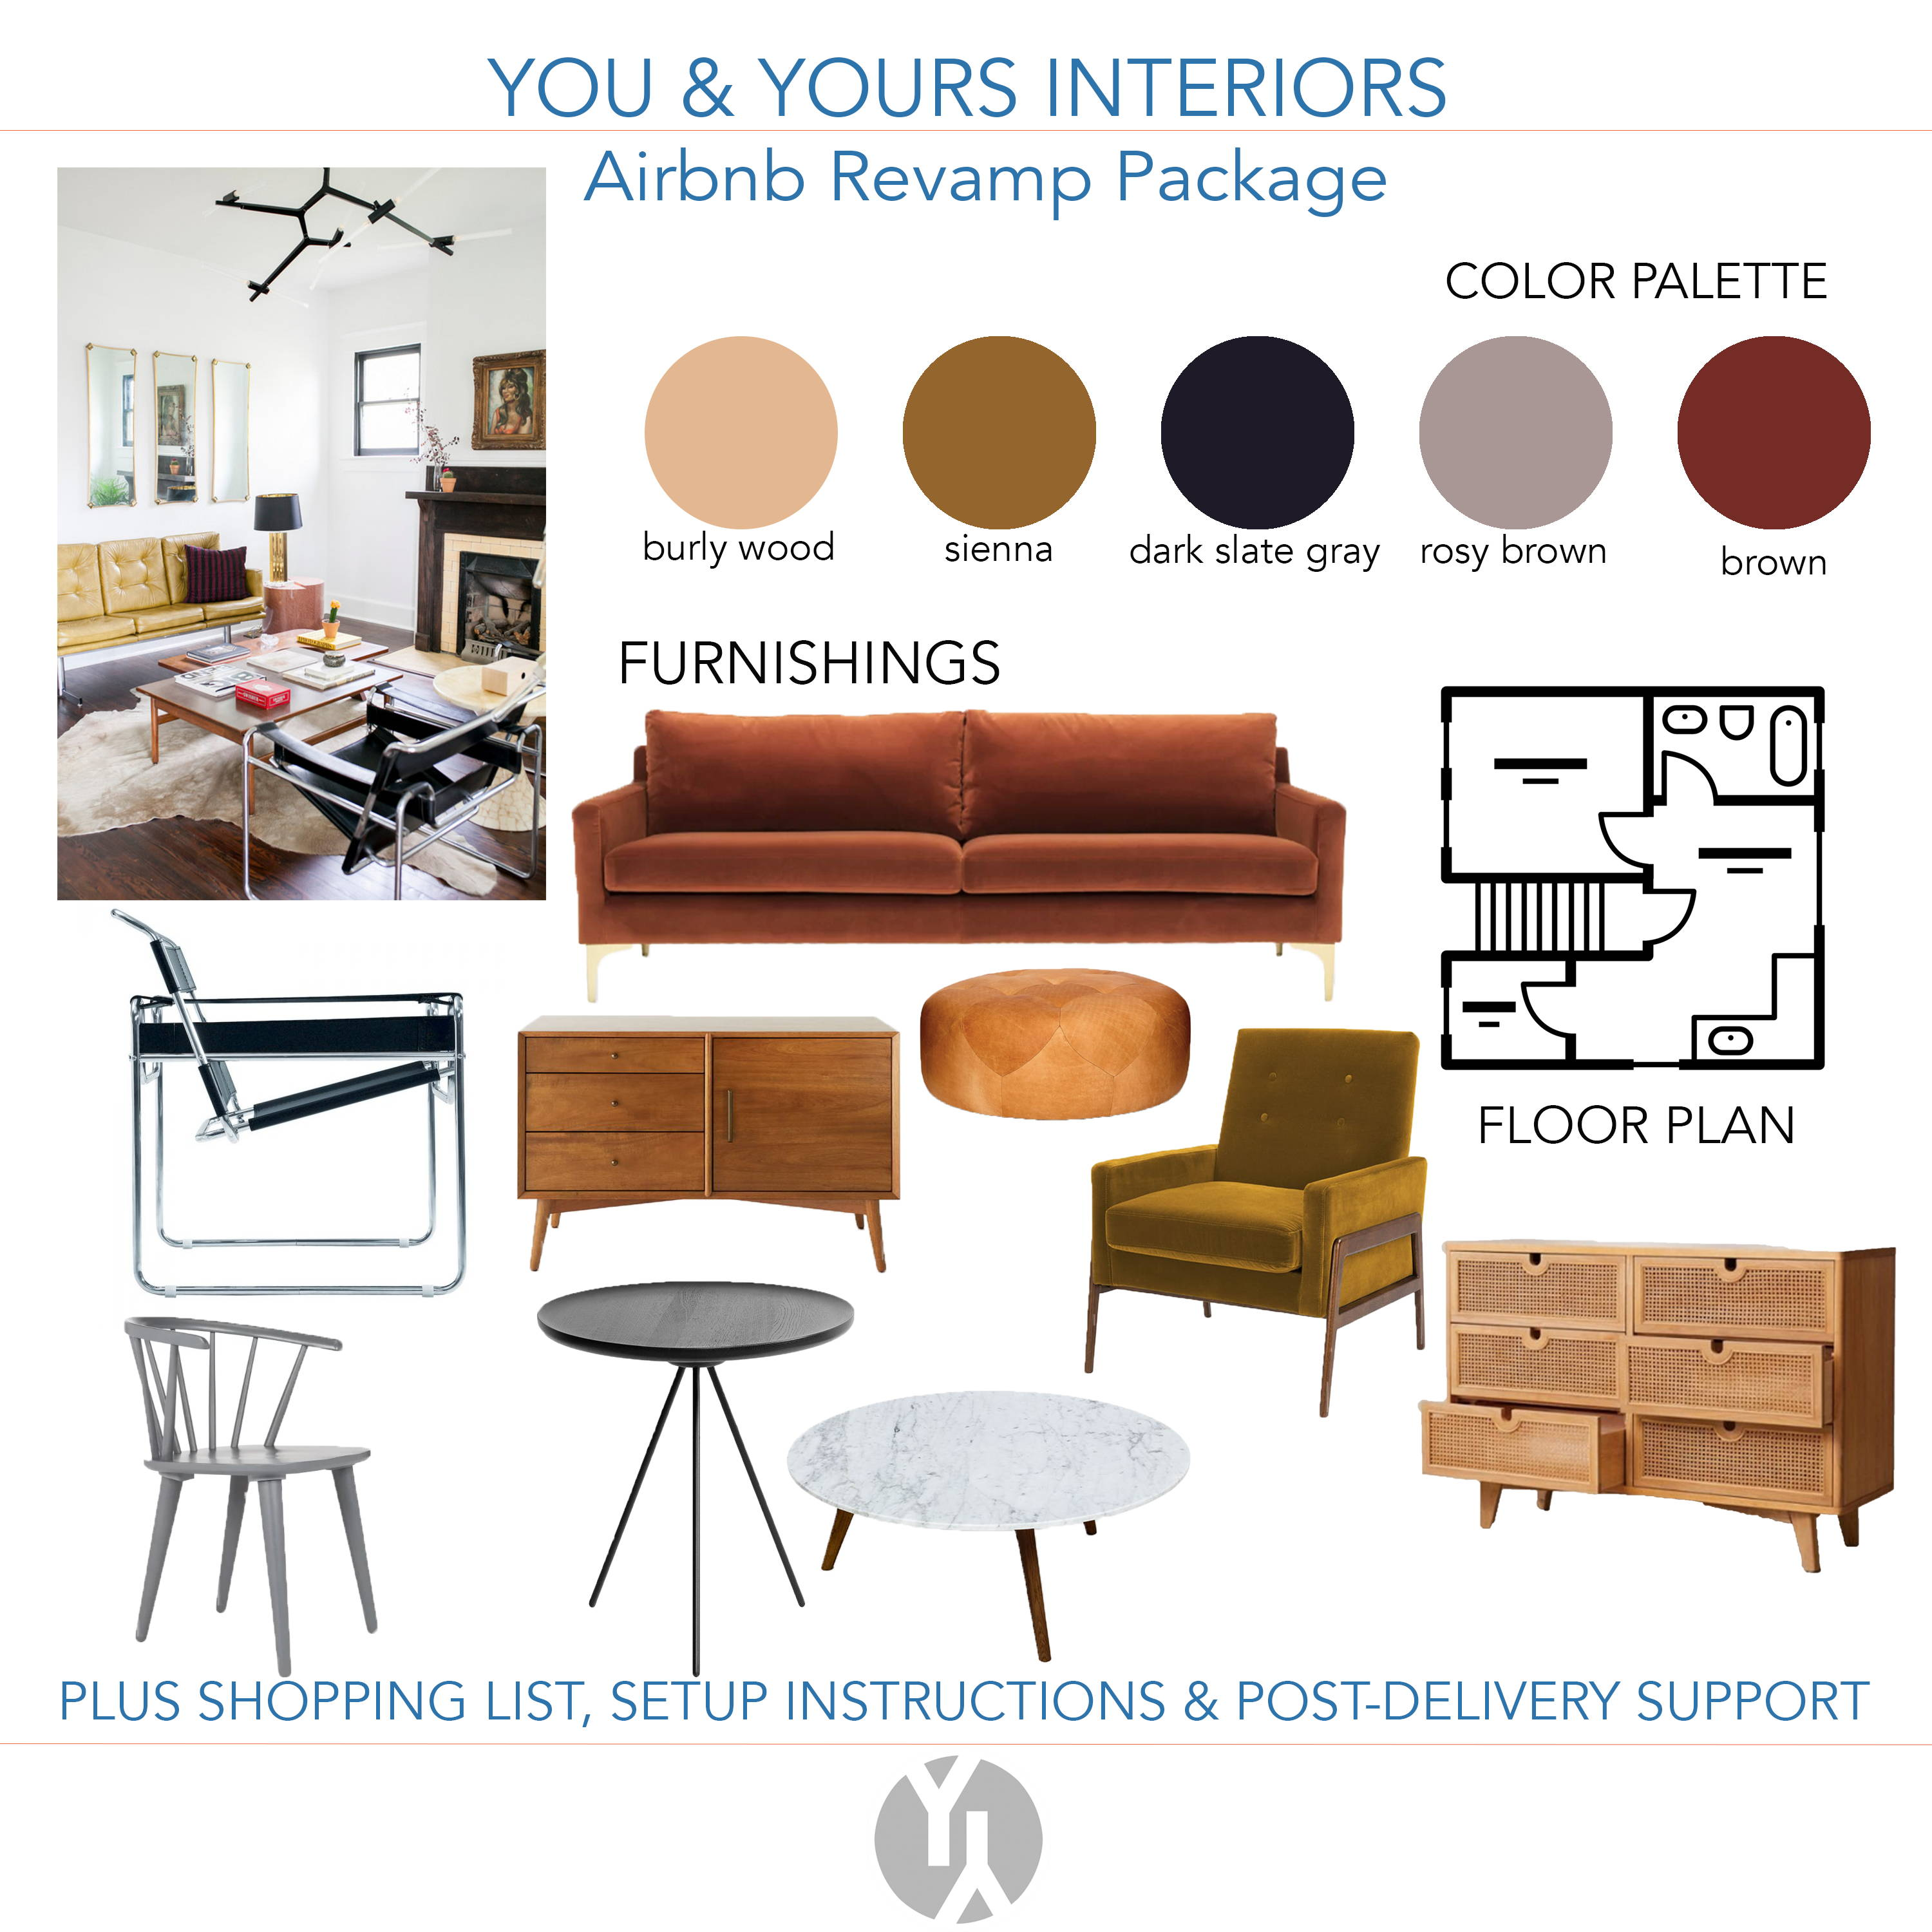 A picture of a pretty color palette in browns and reds, with a rust colored sofa, a wassily chair, mid century modern furniture, and an icon of a floor plan.